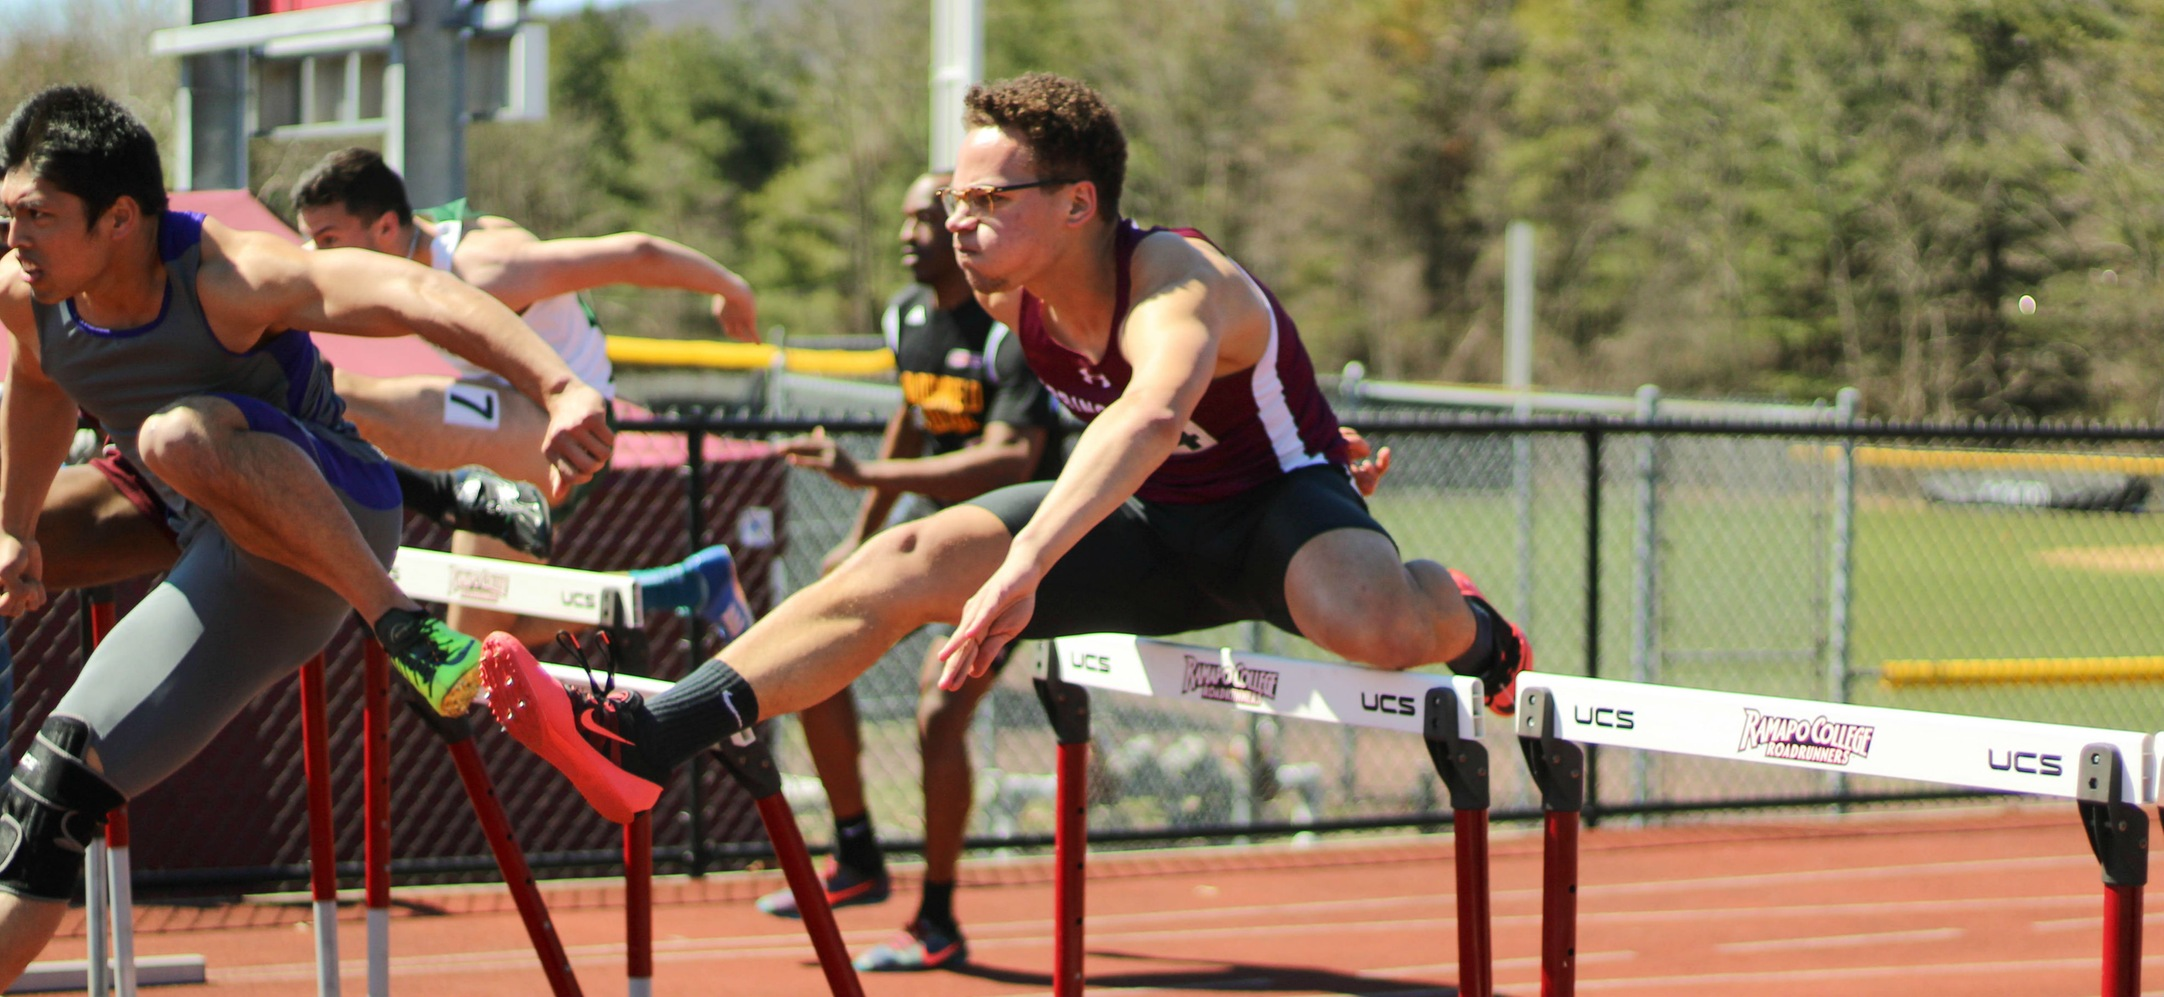 Men's Track and Field Takes Third Overall at Ramapo Invitational